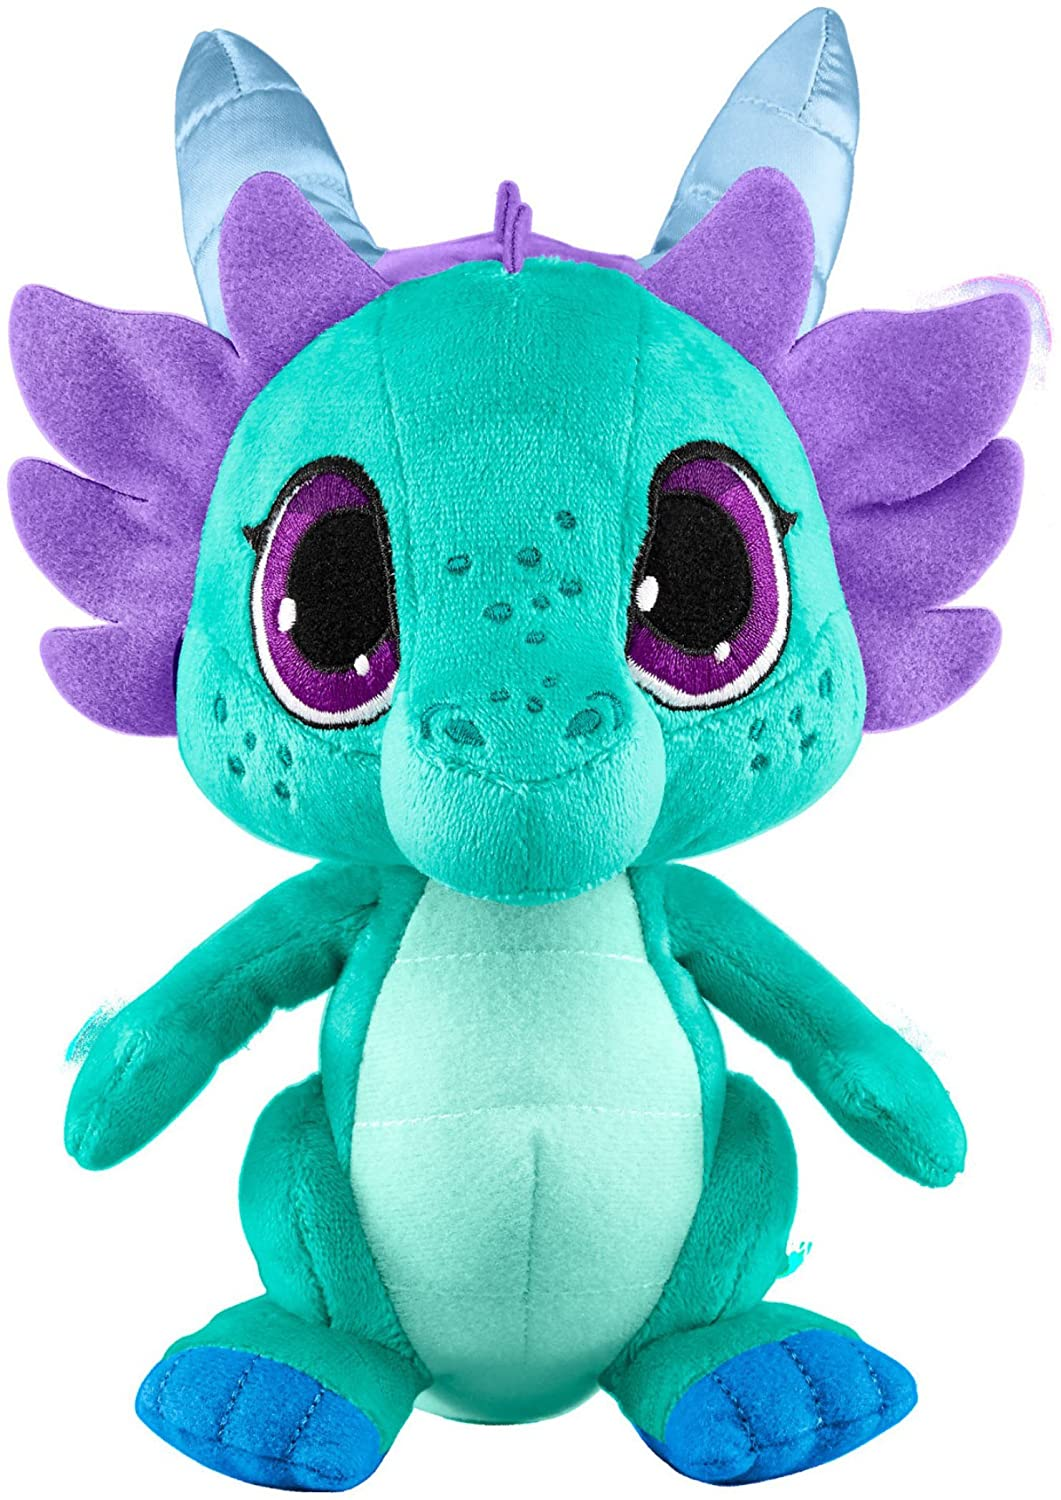 Fisher-Price Nickelodeon Shimmer & Shine, Zahramay Plush Friends, Nazboo FNF62